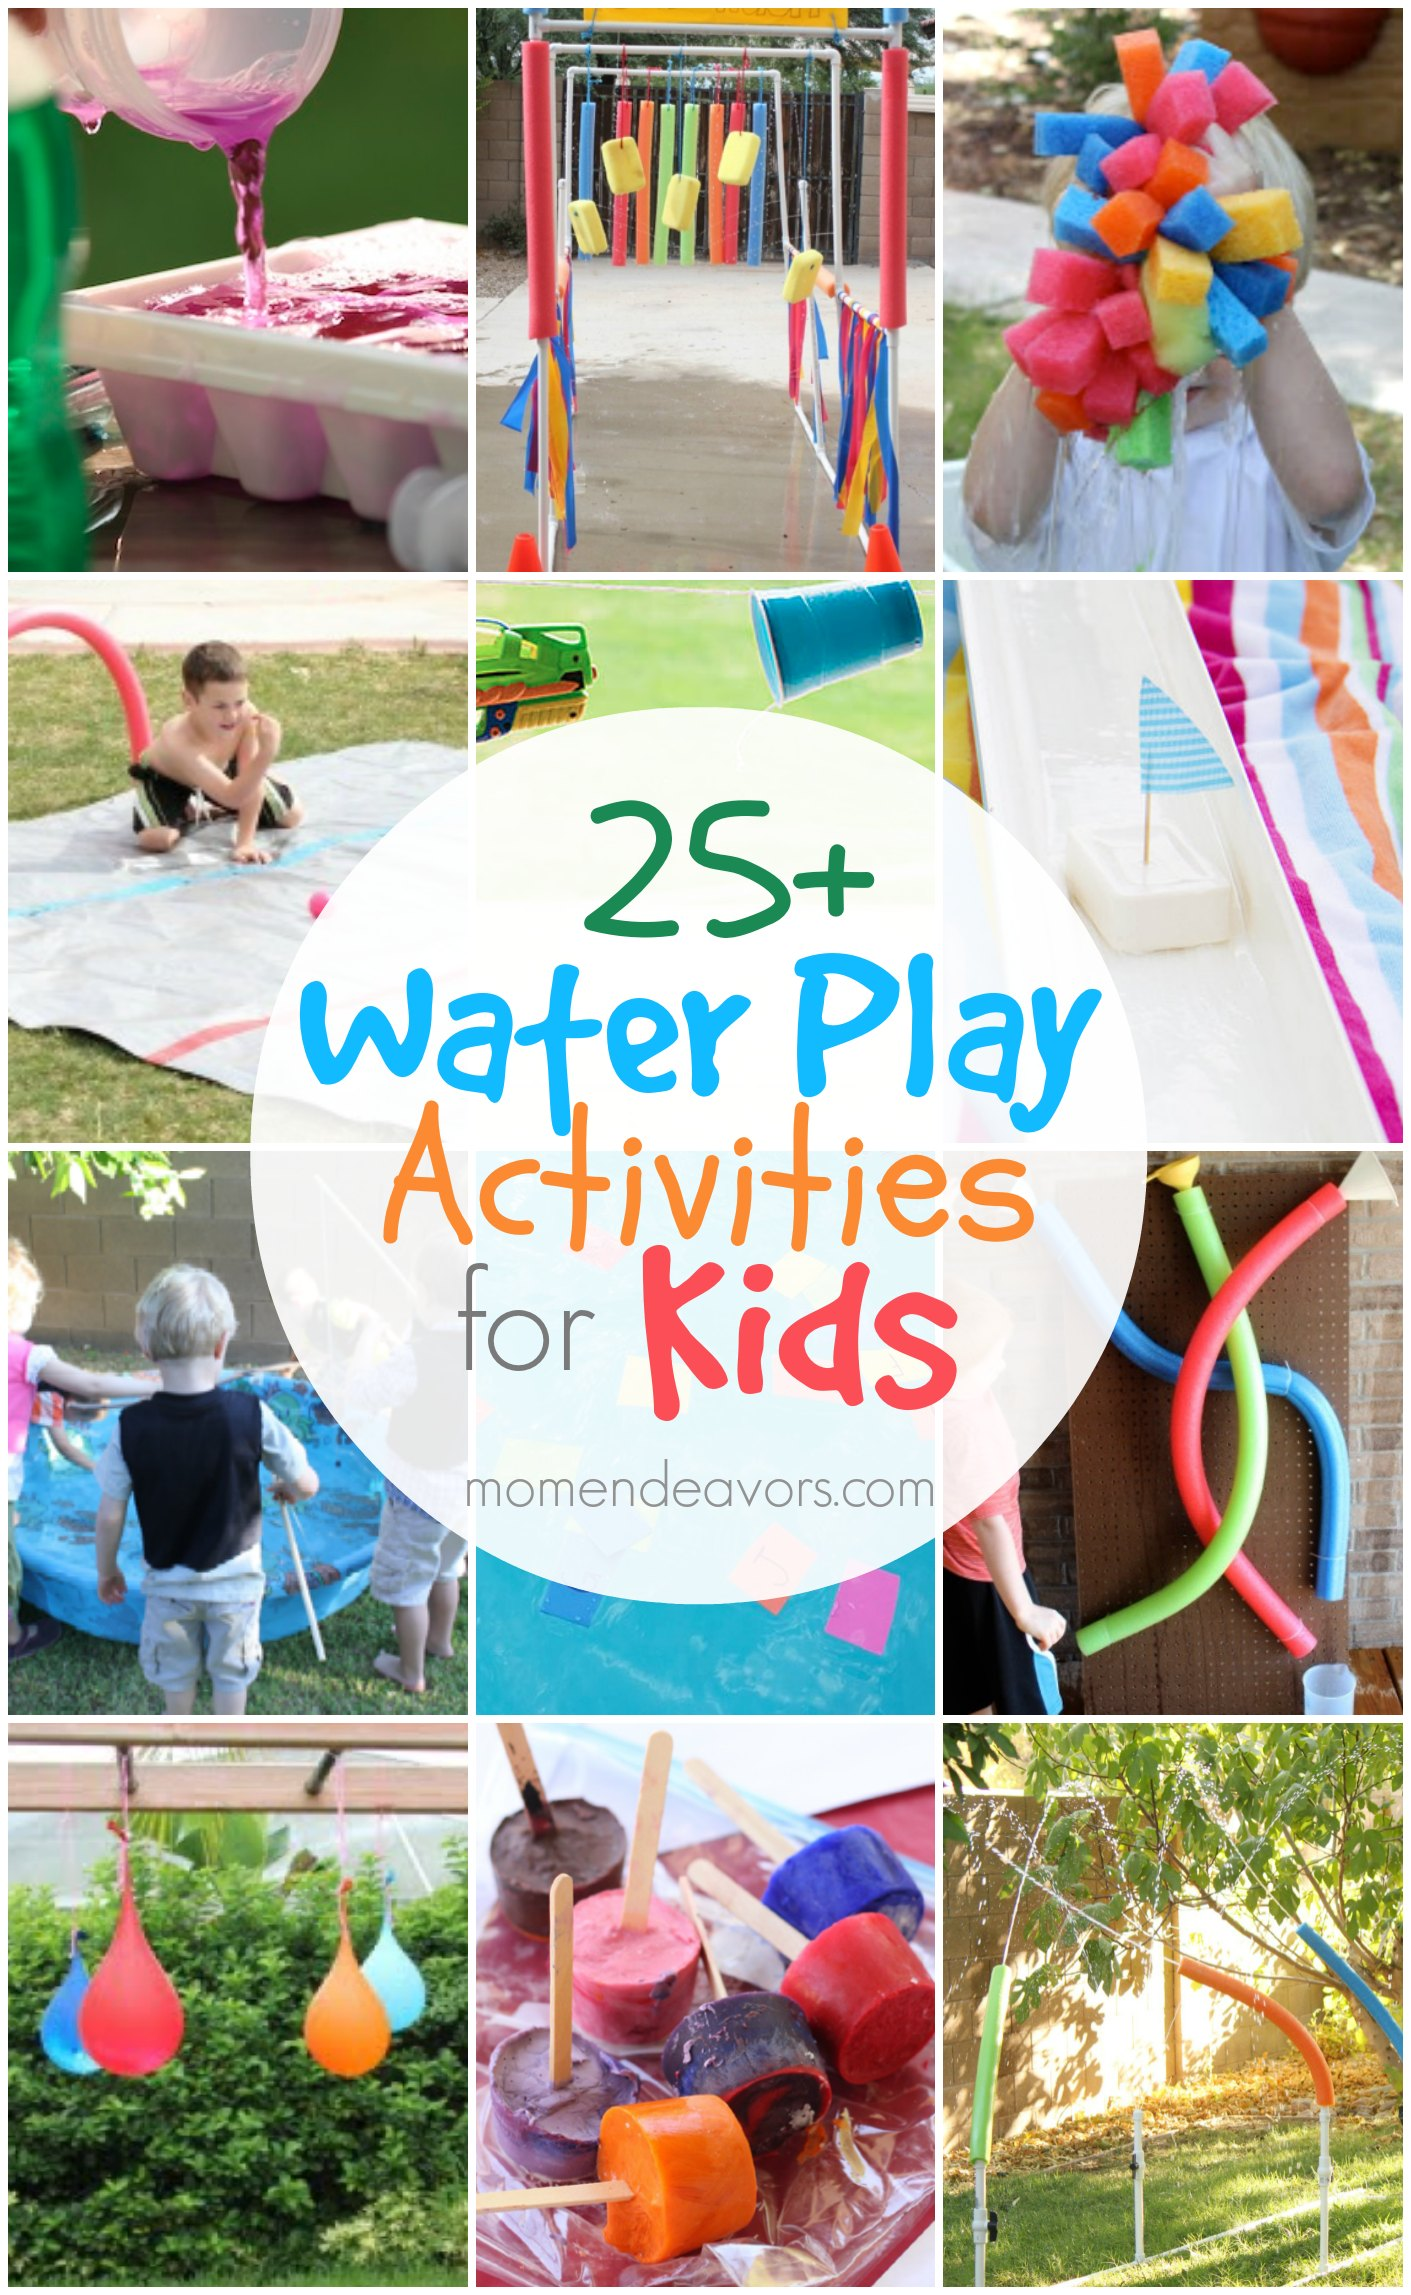 25+ Outdoor Water Play Activities for Kids